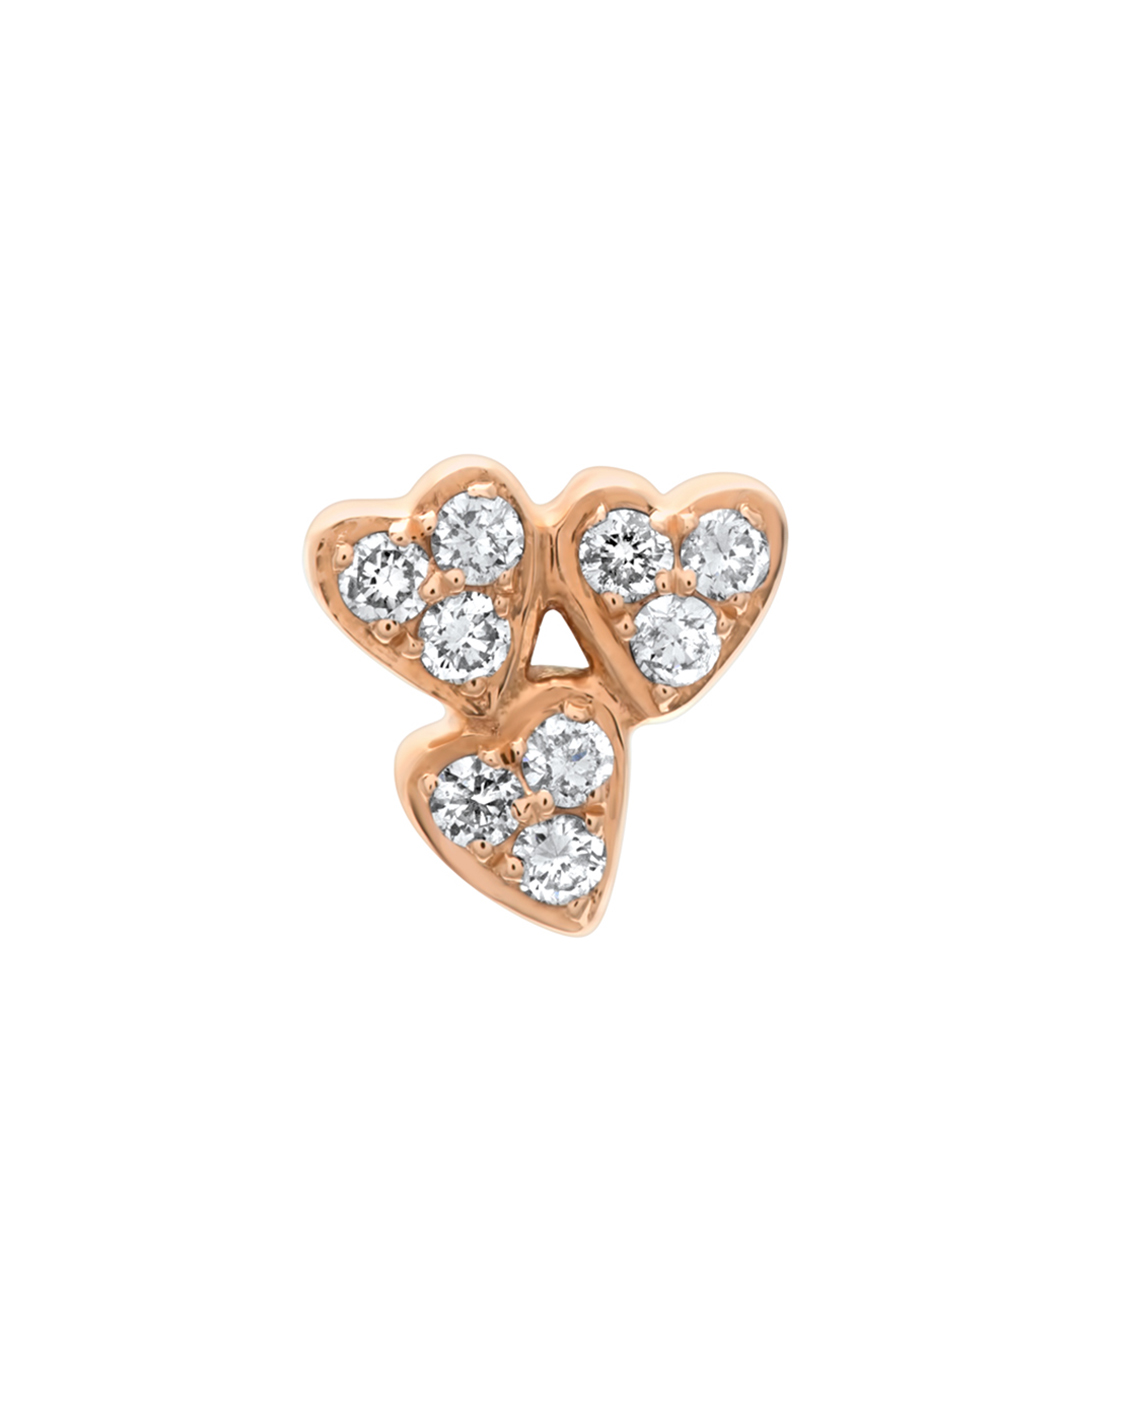 Queen of Hearts Diamond Cluster Earring by Marmari on curated-crowd.com